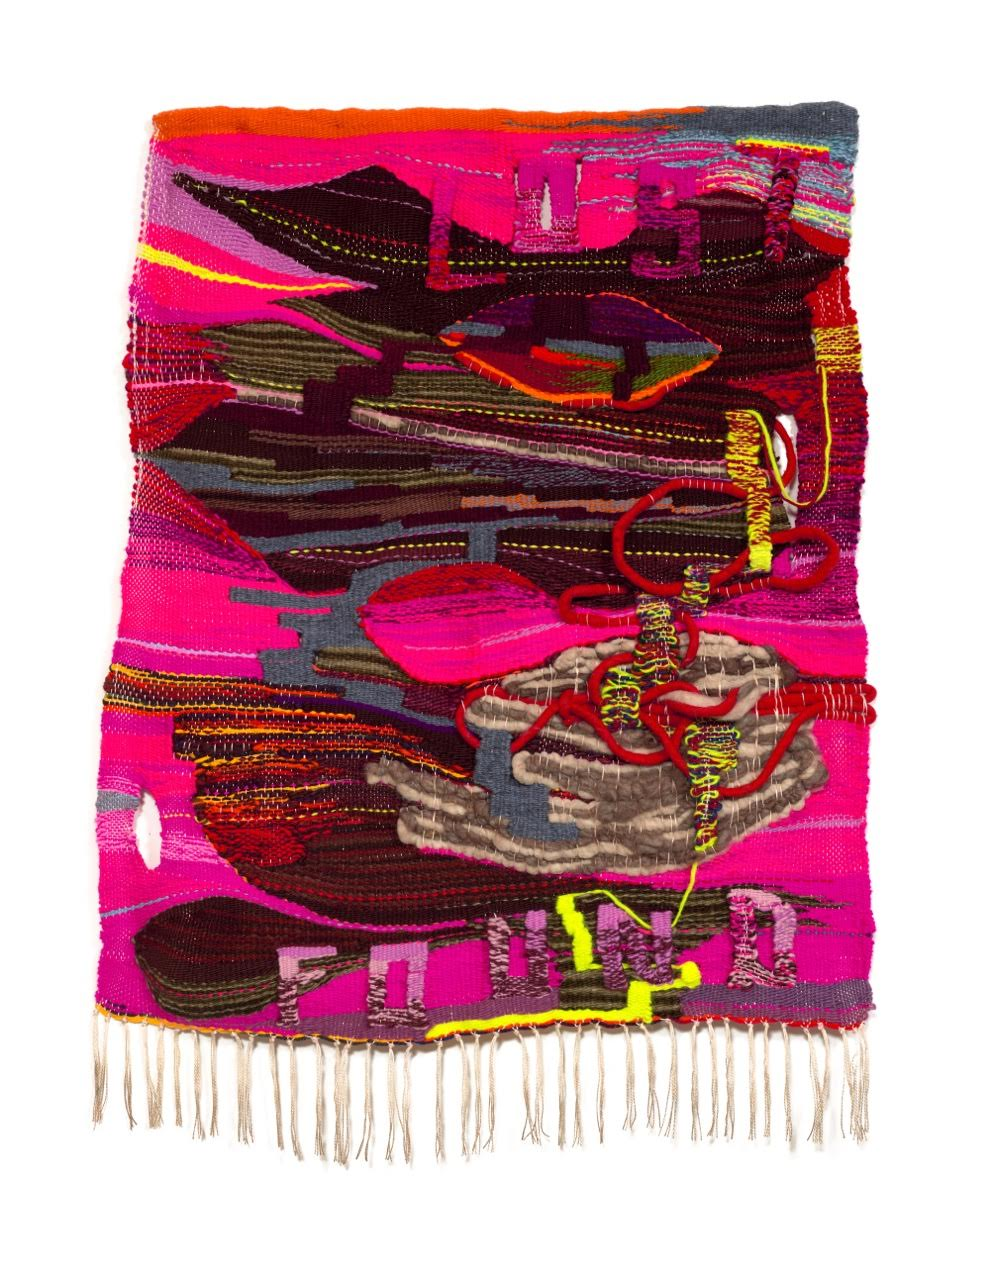 Lost & Found, 2018, 48 x 32 in, wool, cotton, acrylic, metallic fibers